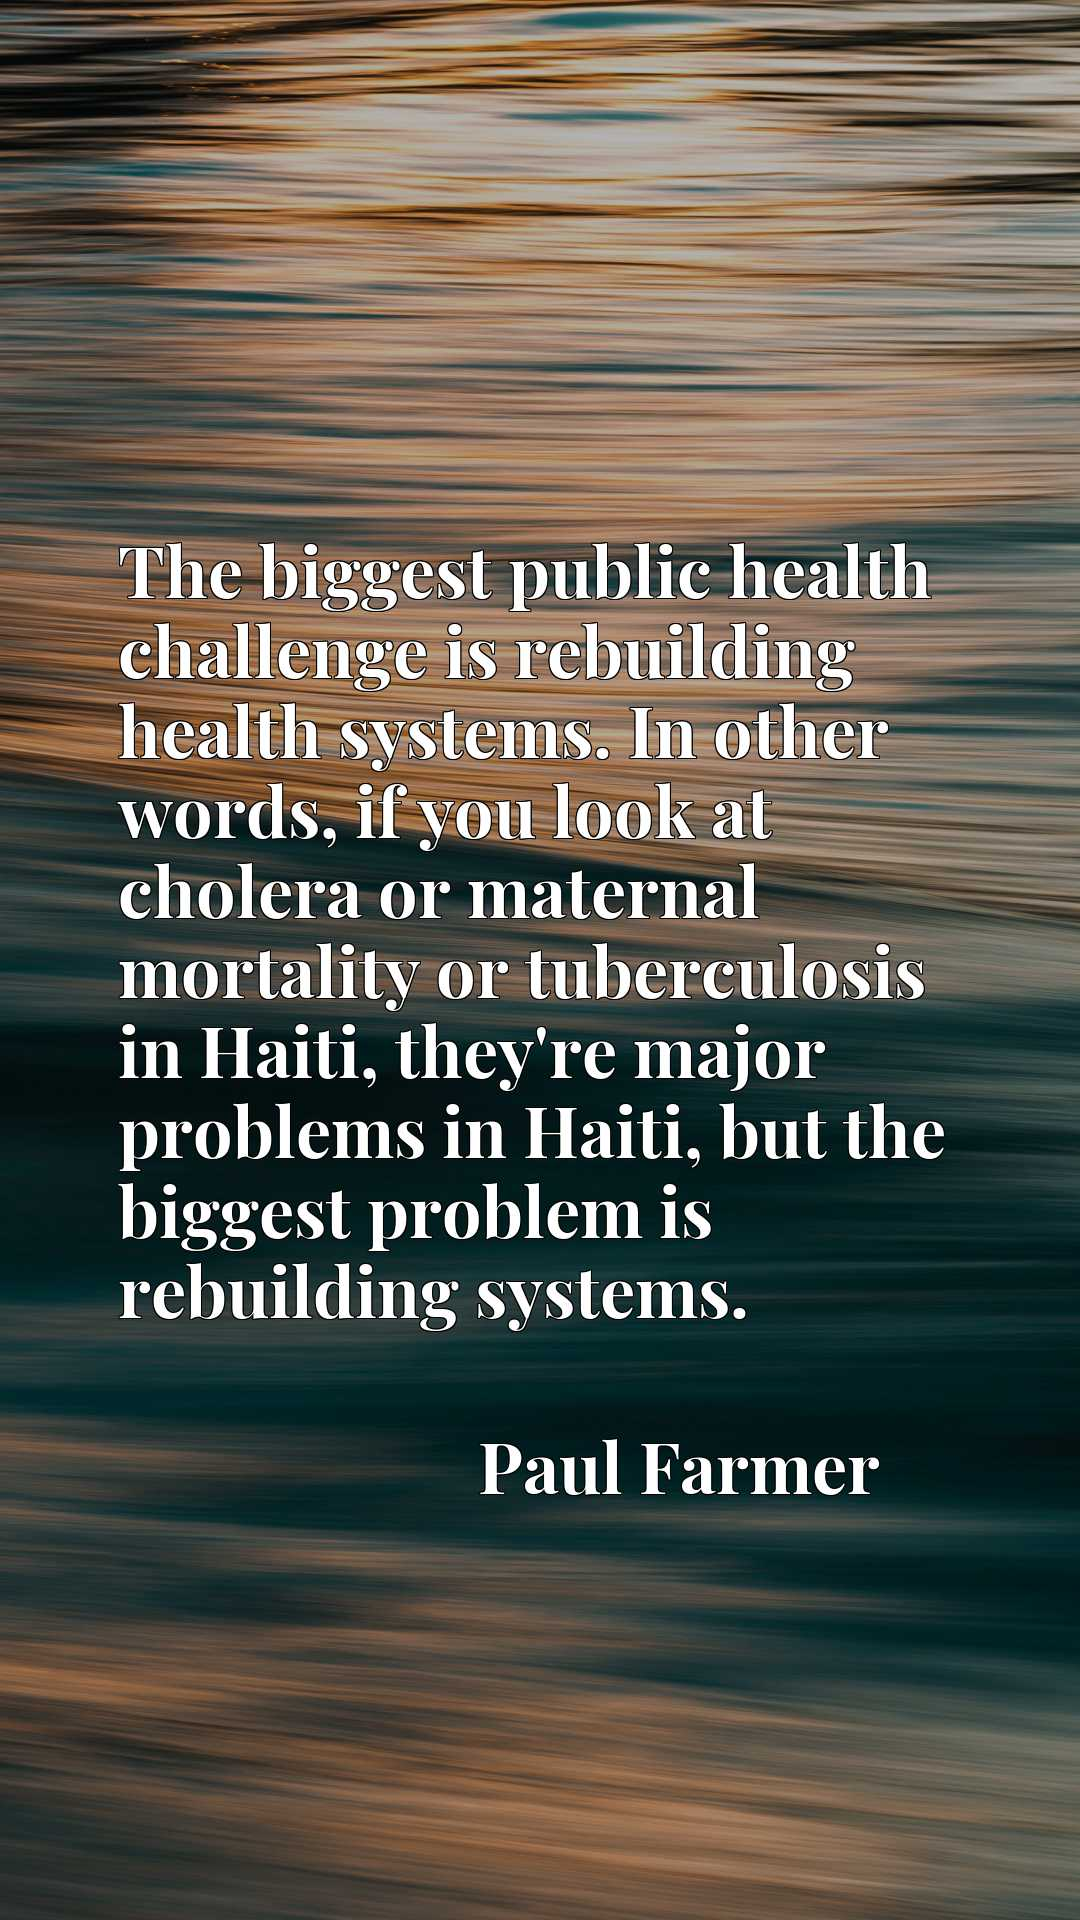 The biggest public health challenge is rebuilding health systems. In other words, if you look at cholera or maternal mortality or tuberculosis in Haiti, they're major problems in Haiti, but the biggest problem is rebuilding systems.